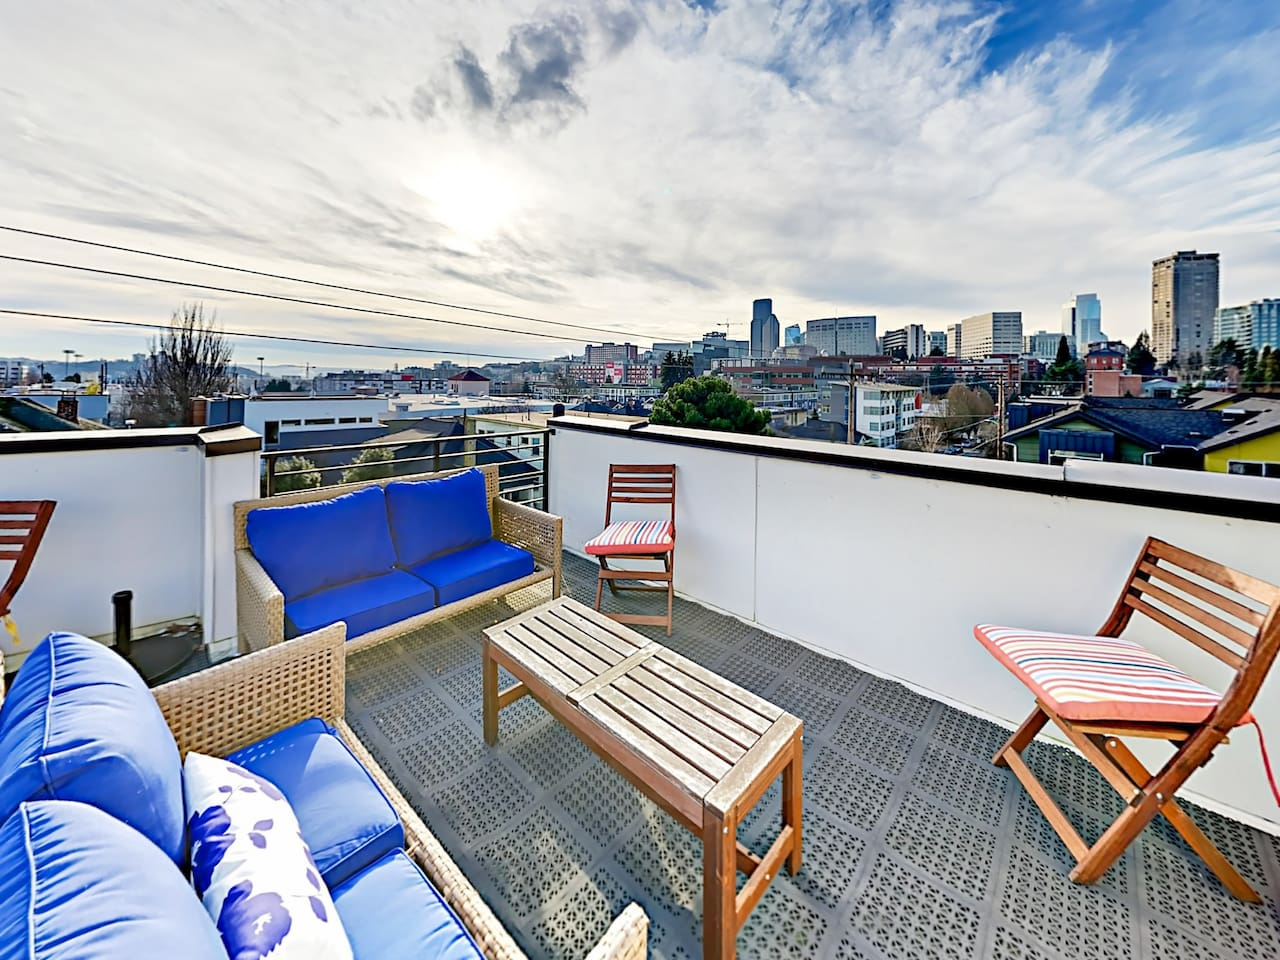 Welcome to Seattle! This posh Seattle townhome has an incredible rooftop deck.